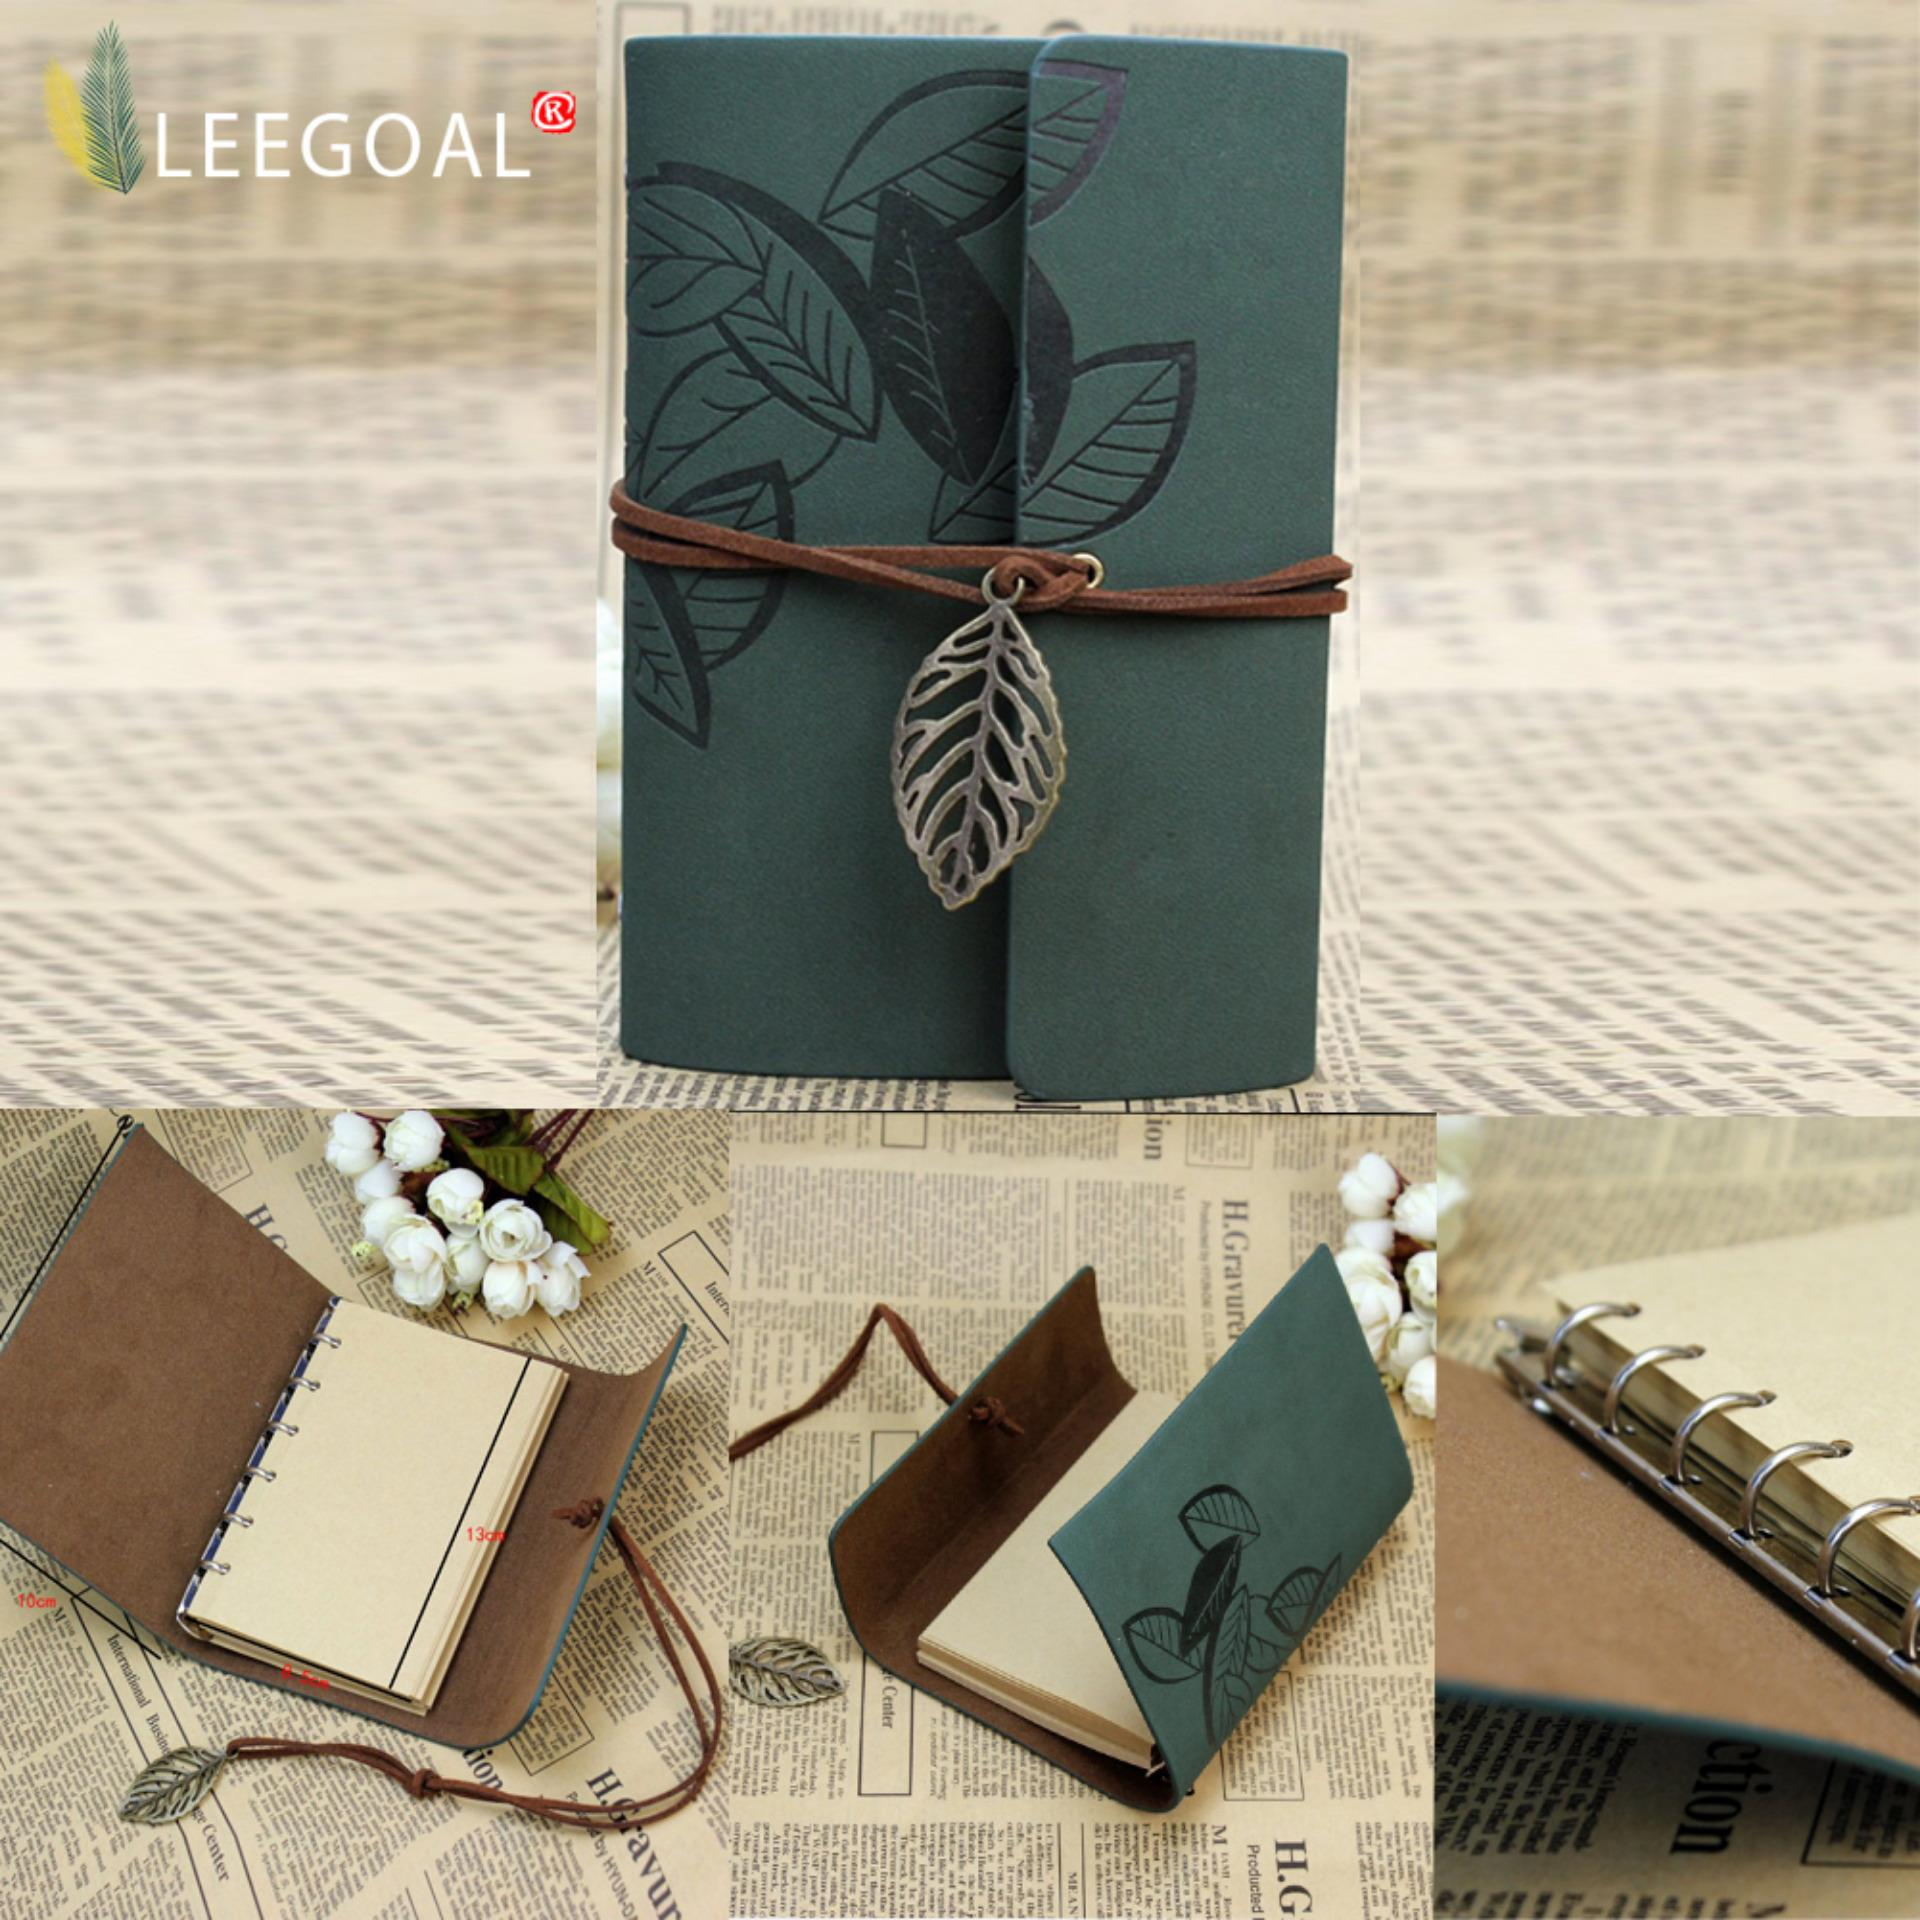 ... Leegoal PU Leather Cover Loose Leaf Blank Notebook Journal Diary (Green) - intl